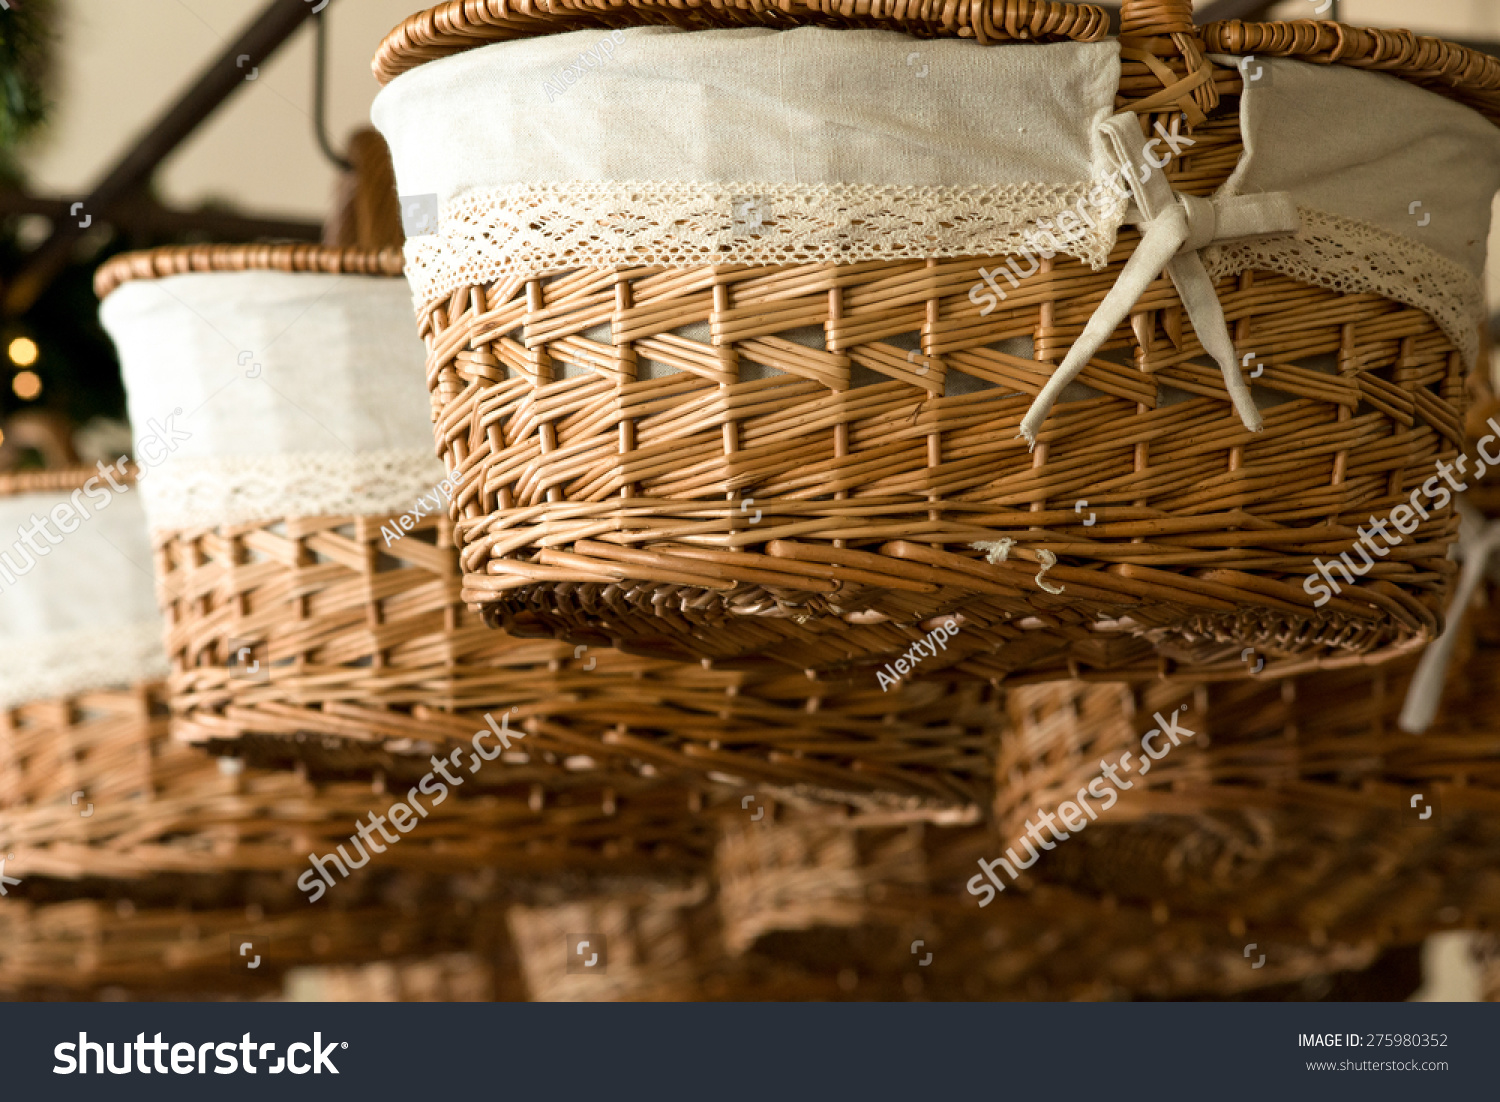 Baskets hanging from the ceiling stock photo